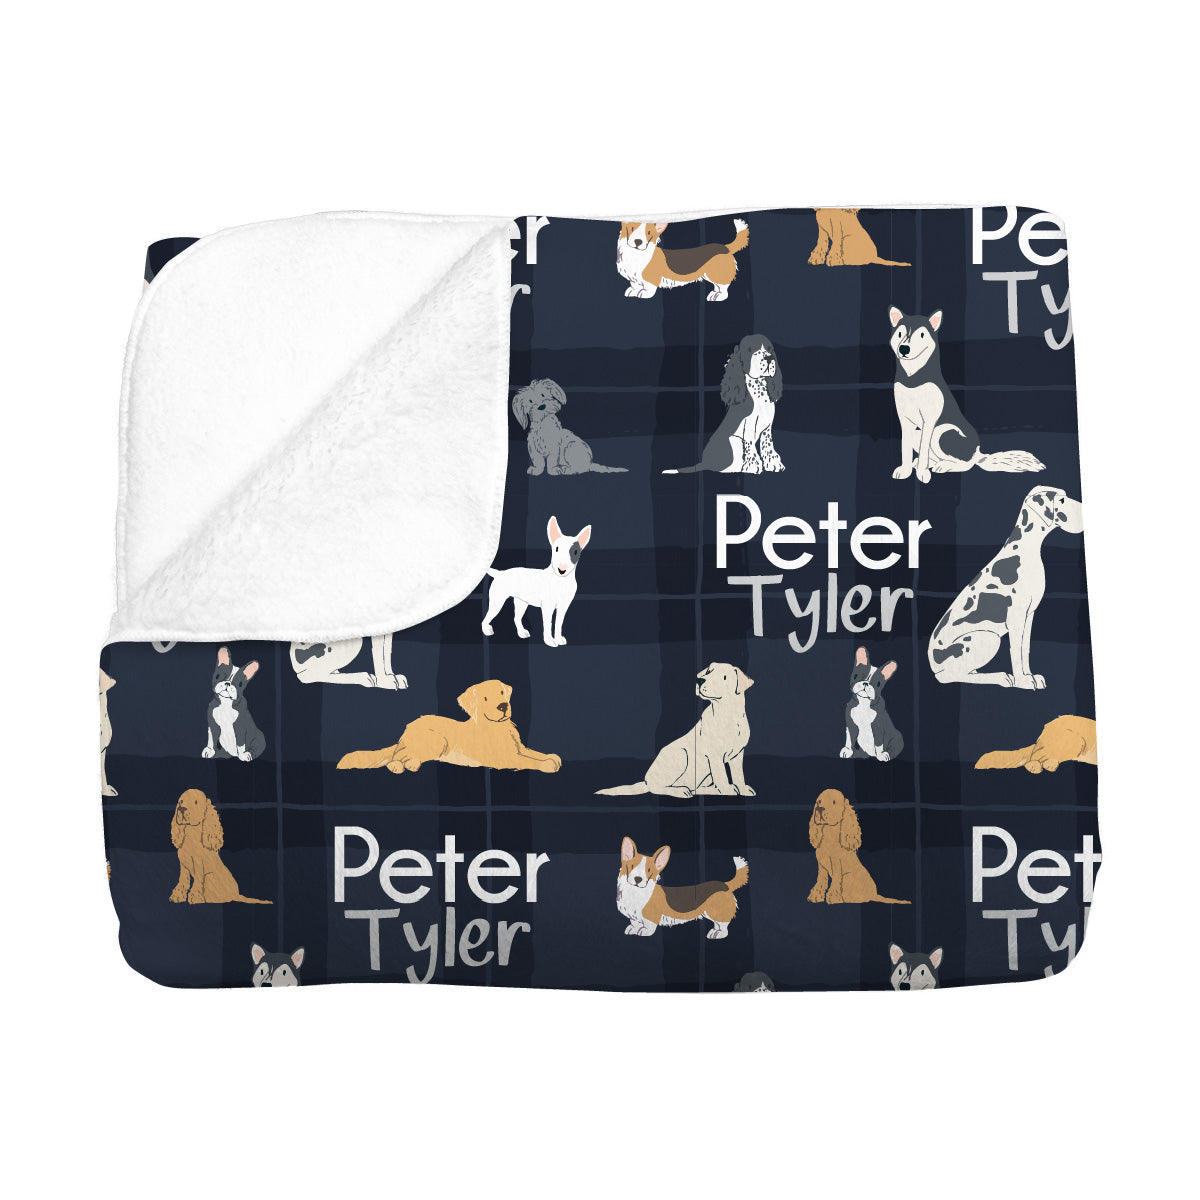 Peter's Pack of Puppies | Big Kid Blanket